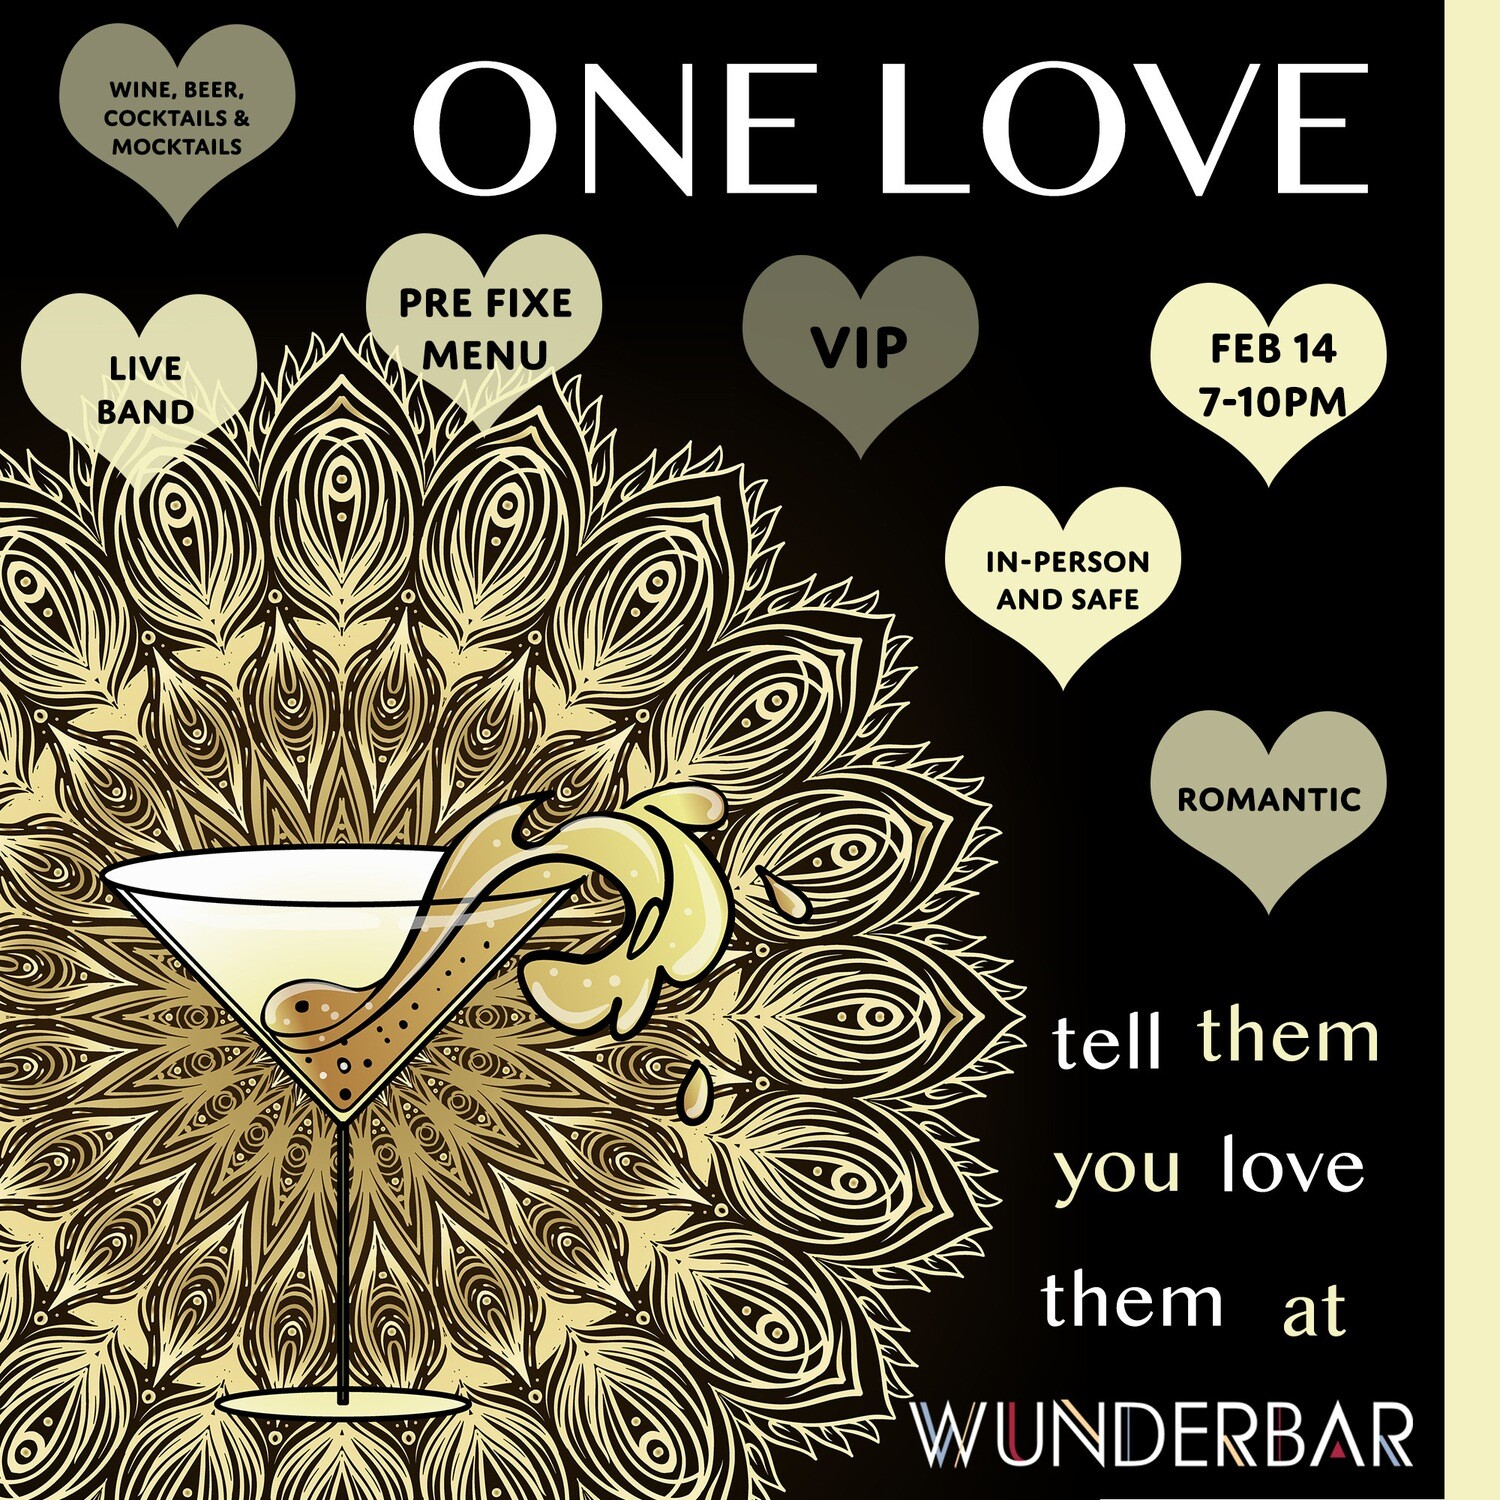 One Love: A VIP Valentines Event